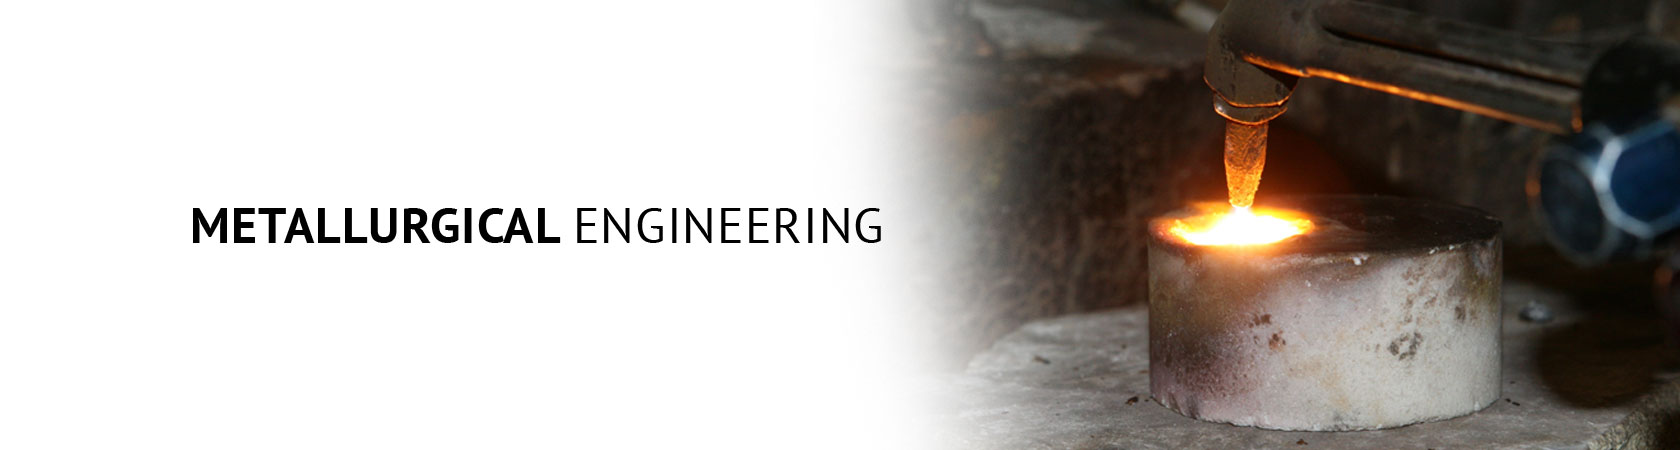 METALLURGICAL-ENGINEERING